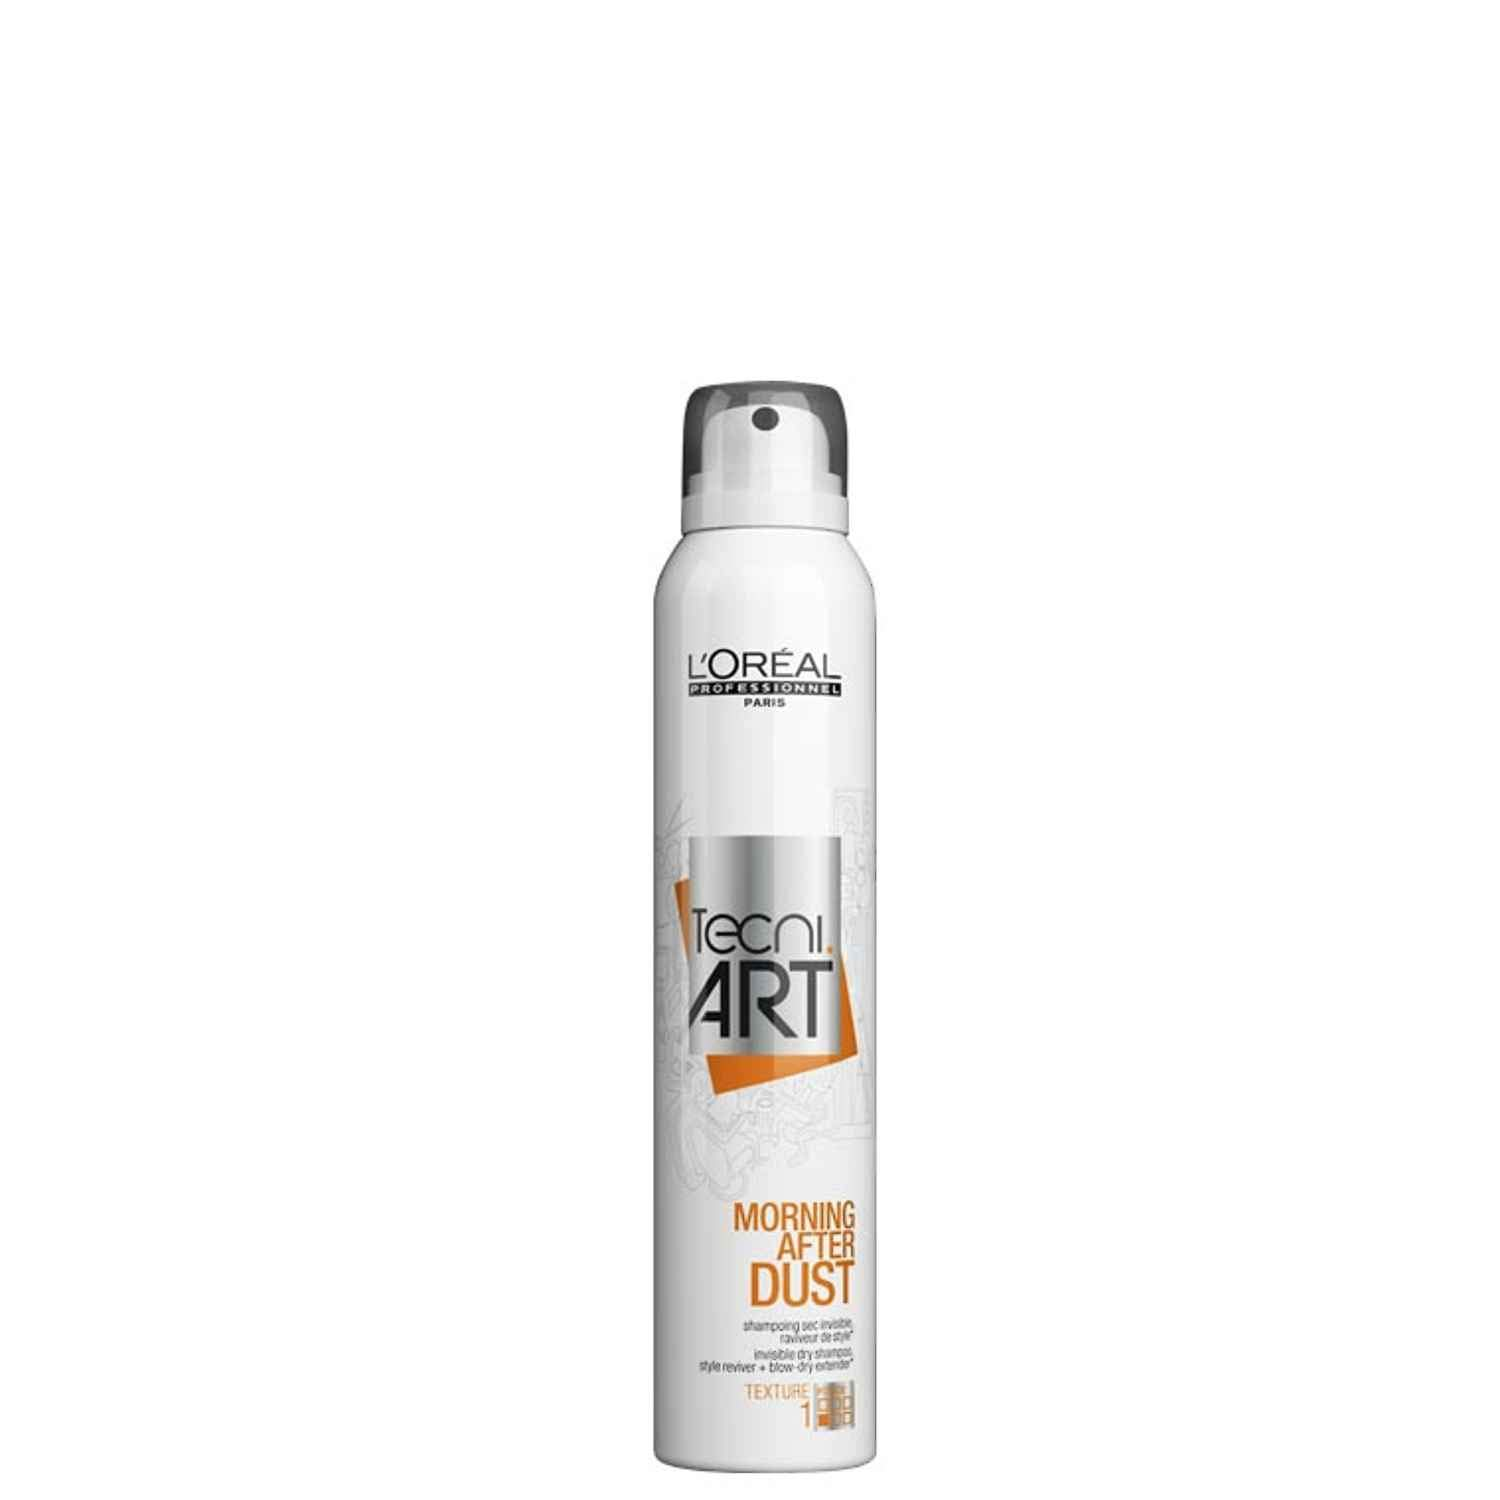 Loreal Tecni Art Morning After Dust Invisible Dry Shampoo 200ml 6.8oz